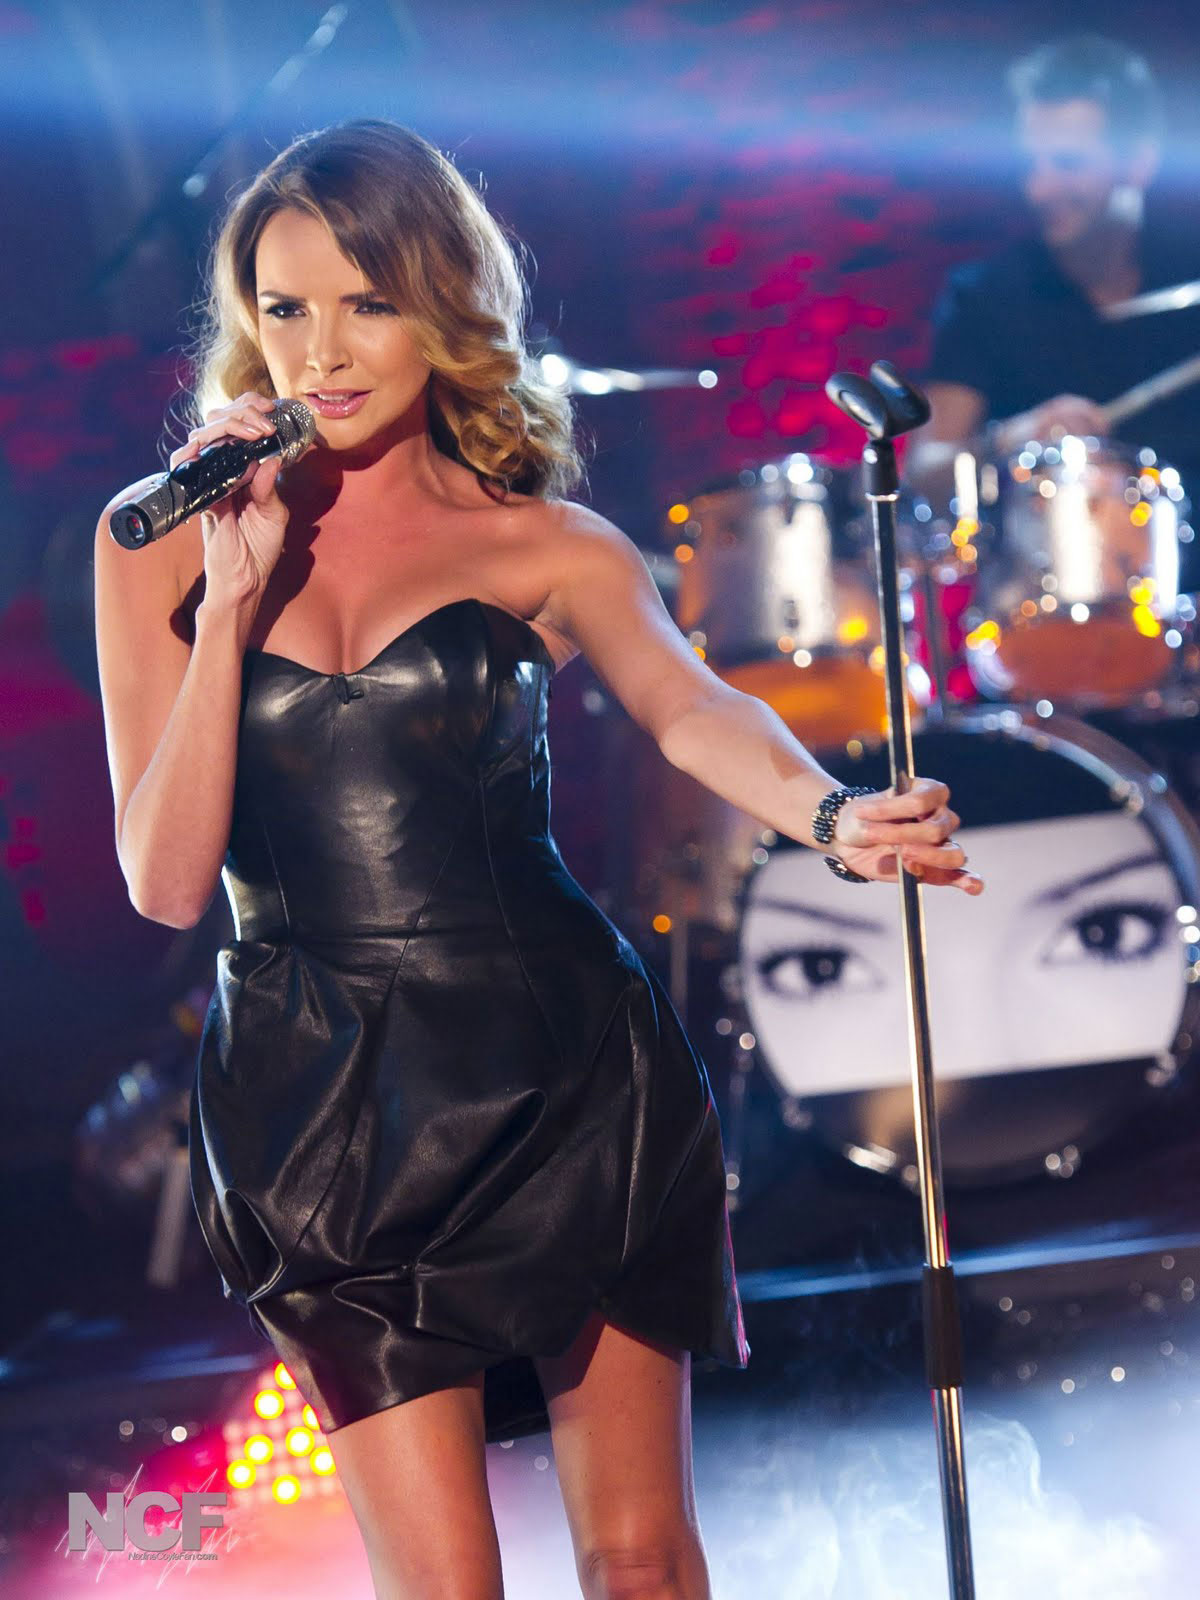 CrystalRoc Creates Swarovski-studded Sennheiser G2 935 Microphone for Nadine Coyle